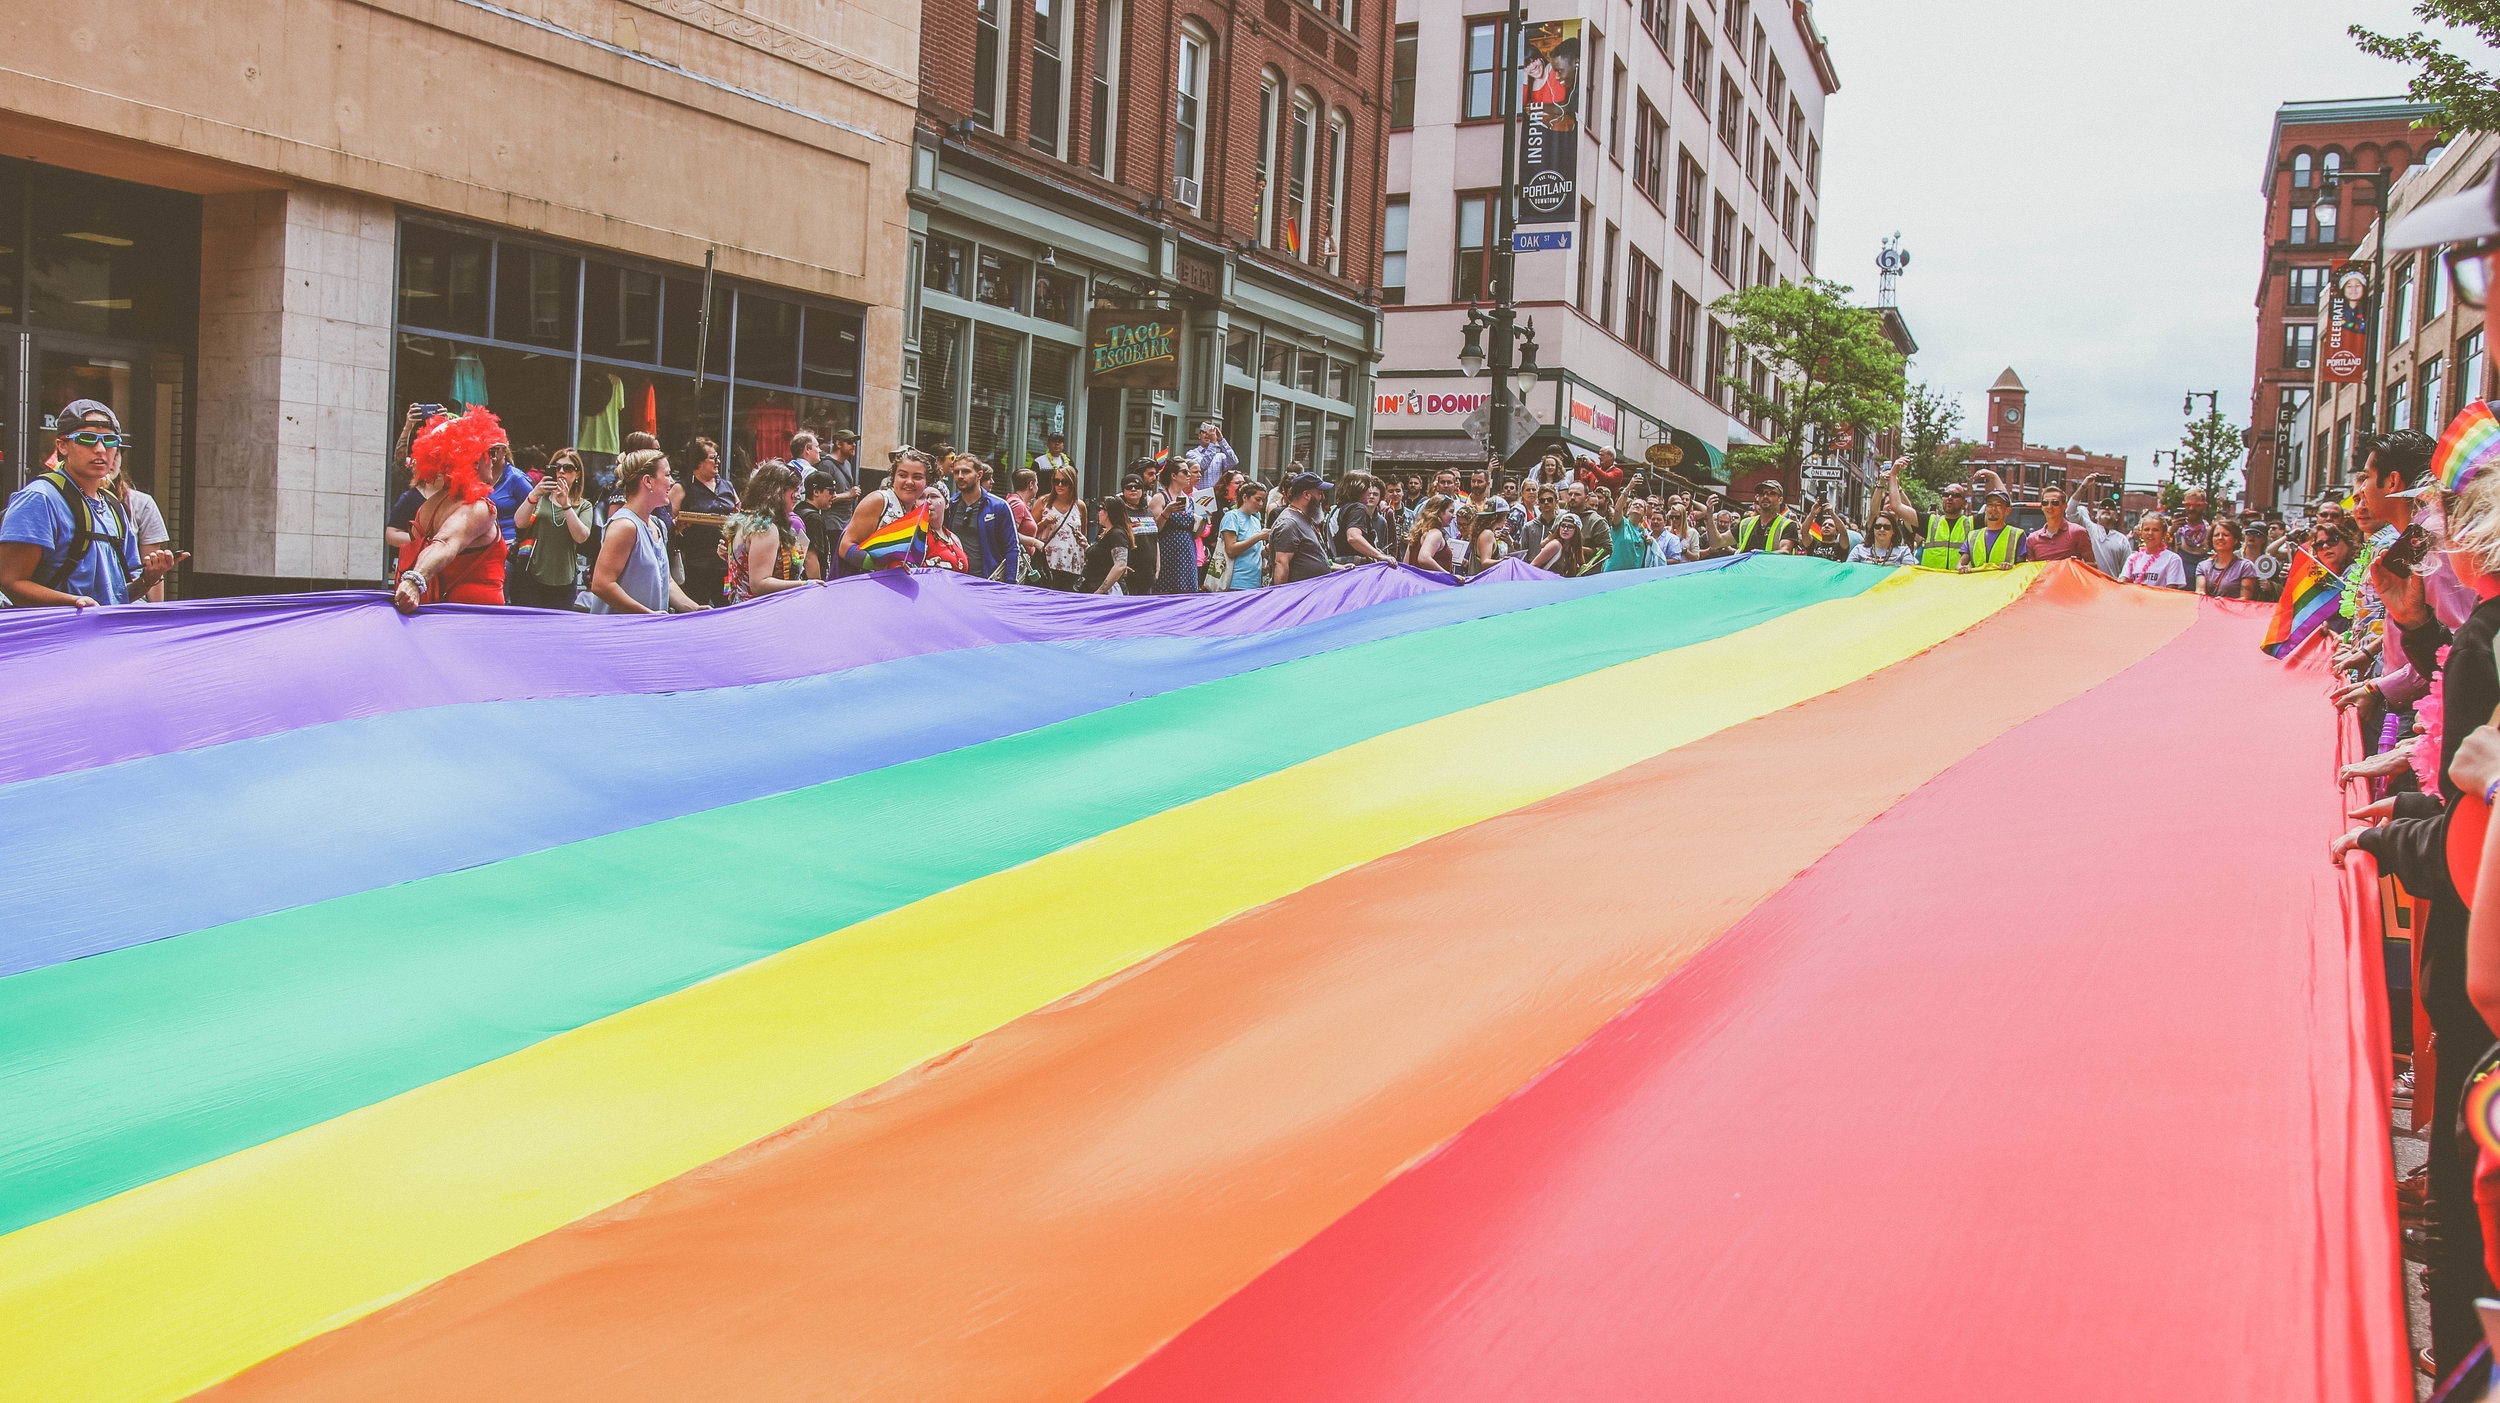 8 Ways to Have More LGBTQ Inclusive Events